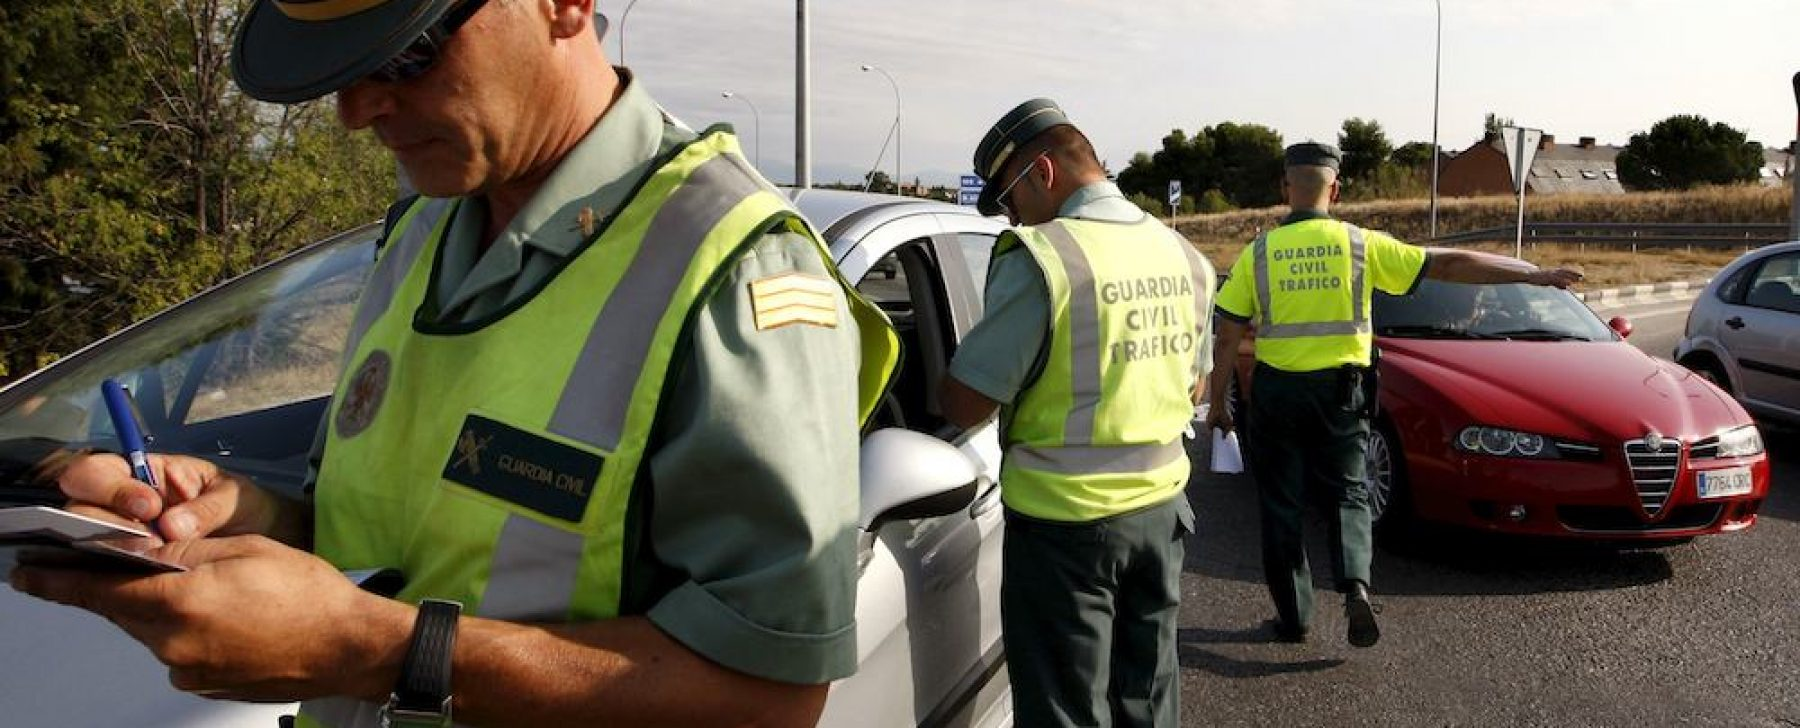 Controles de Guardia civil